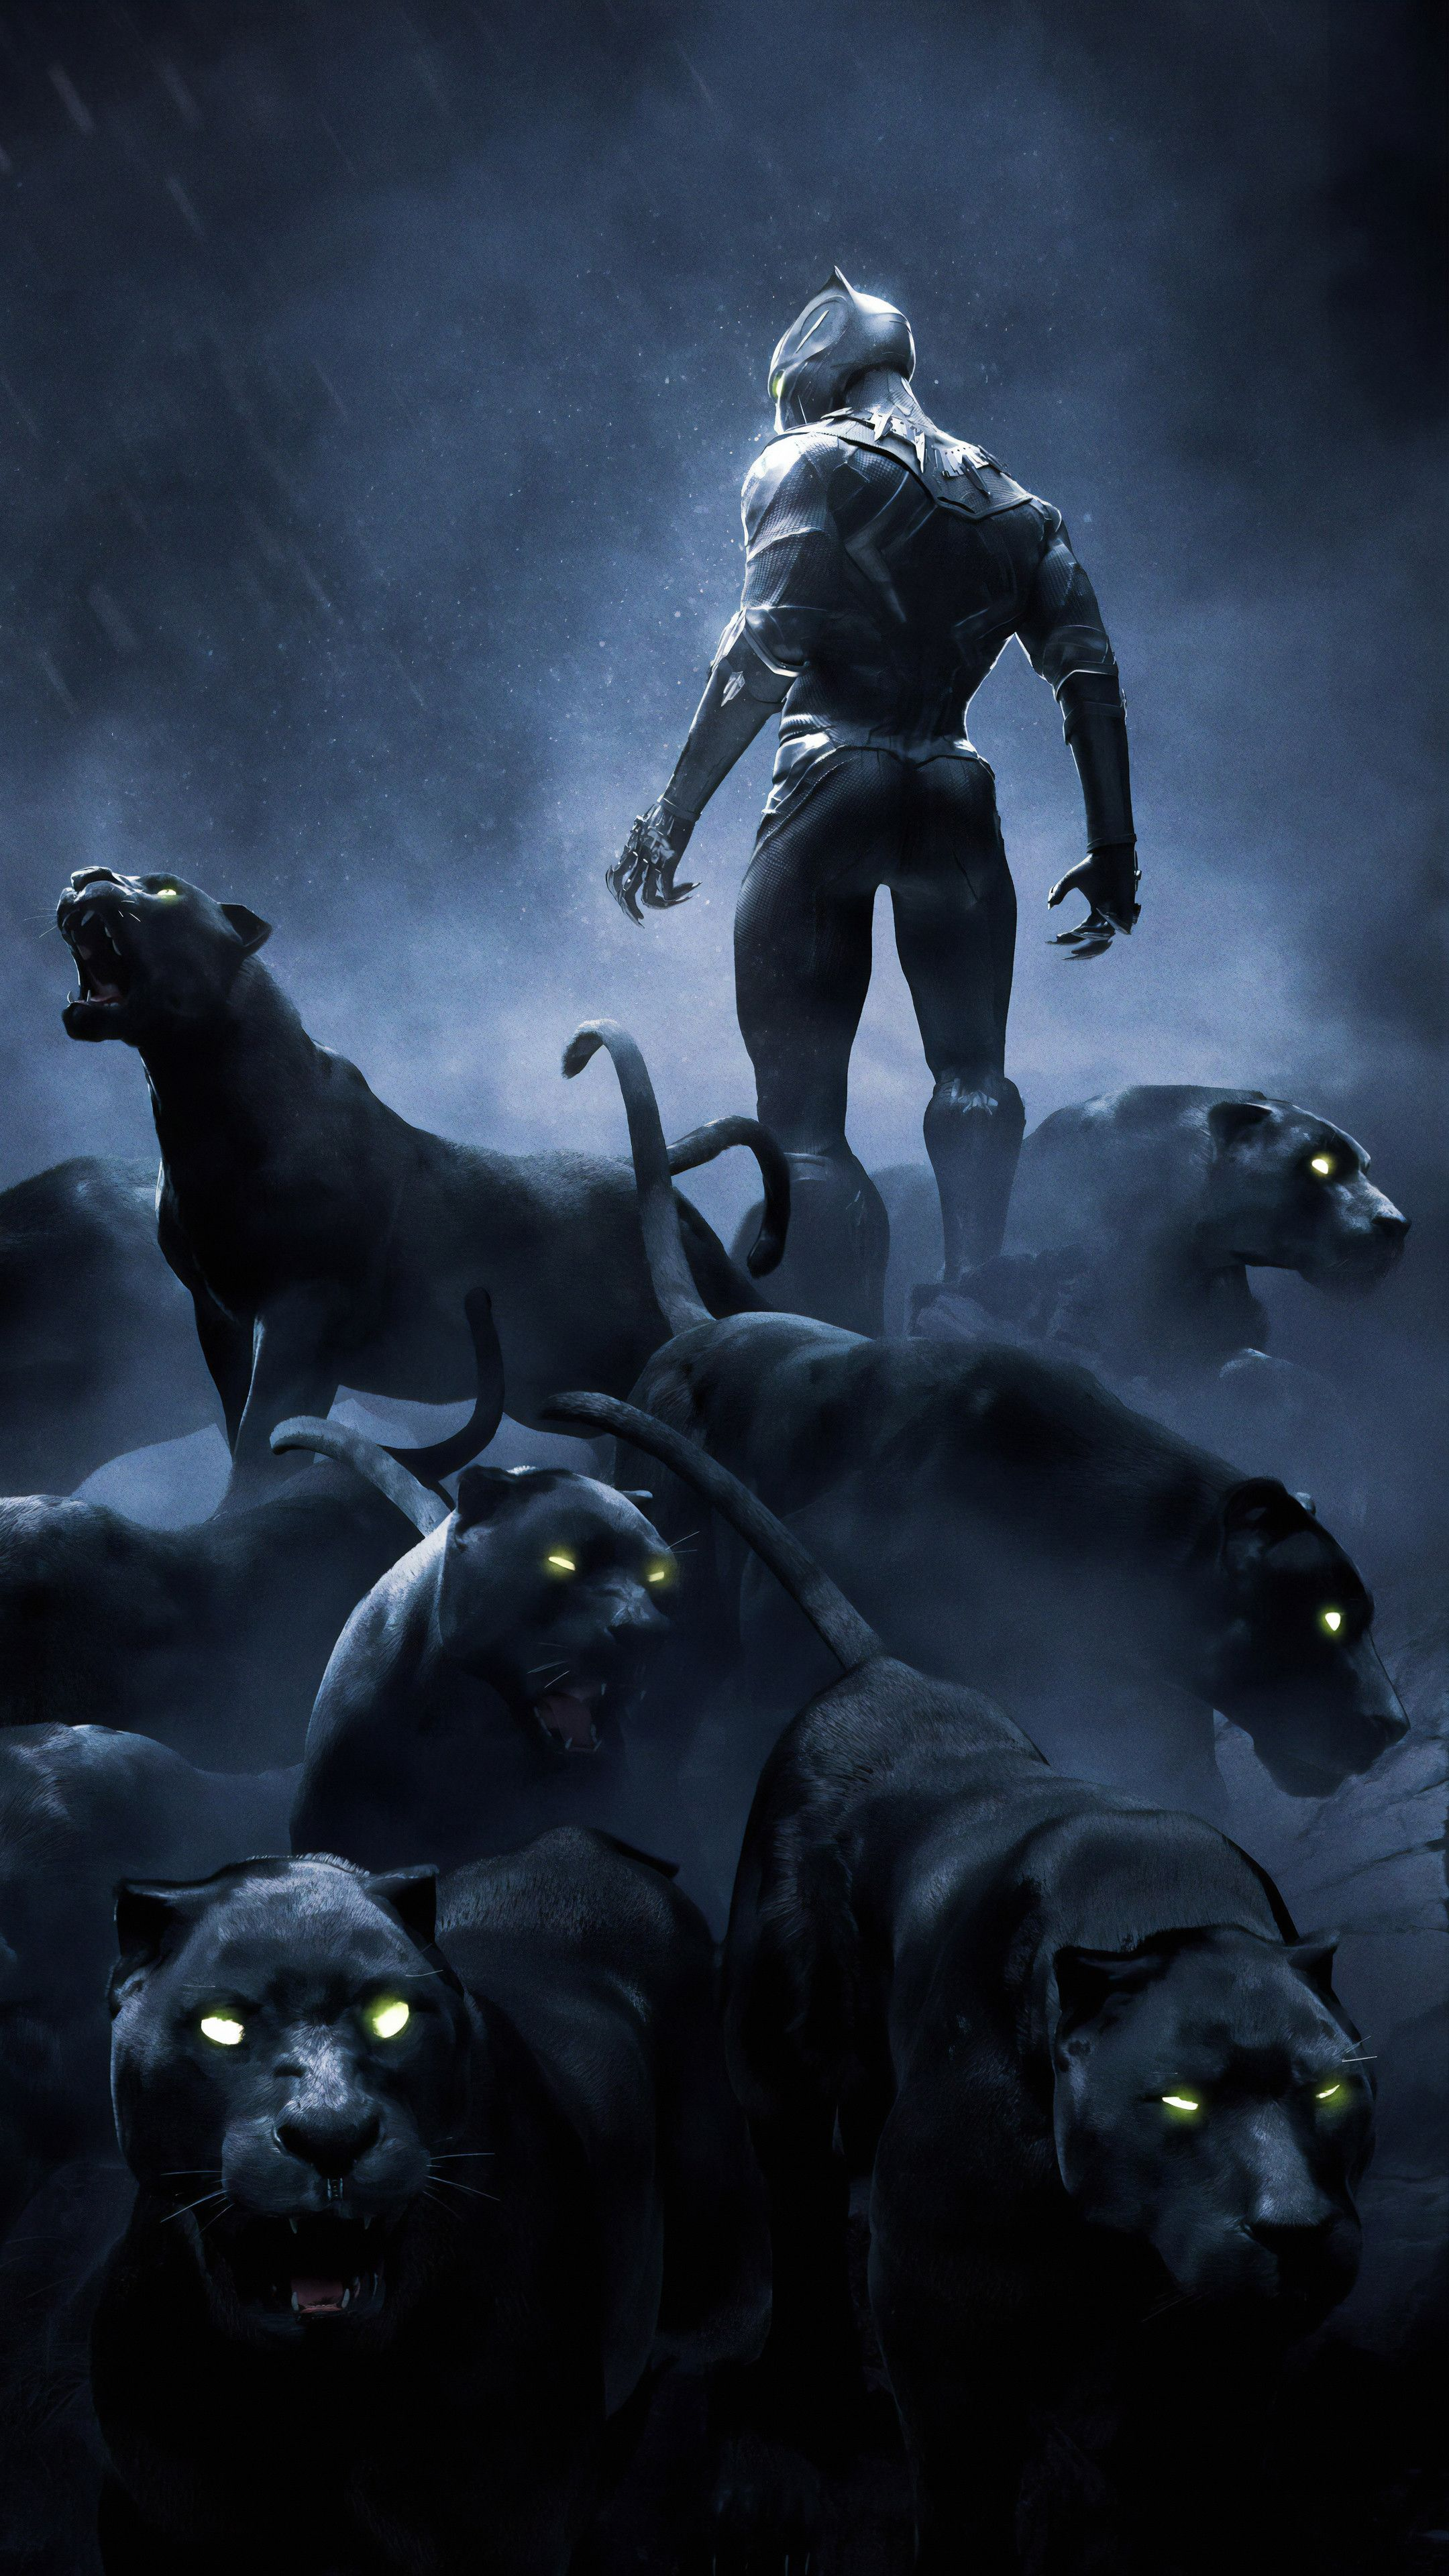 Black Panther Rise Up 4k In 2160x3840 Resolution In 2020 Black Panther Art Panther Art Marvel Superhero Posters